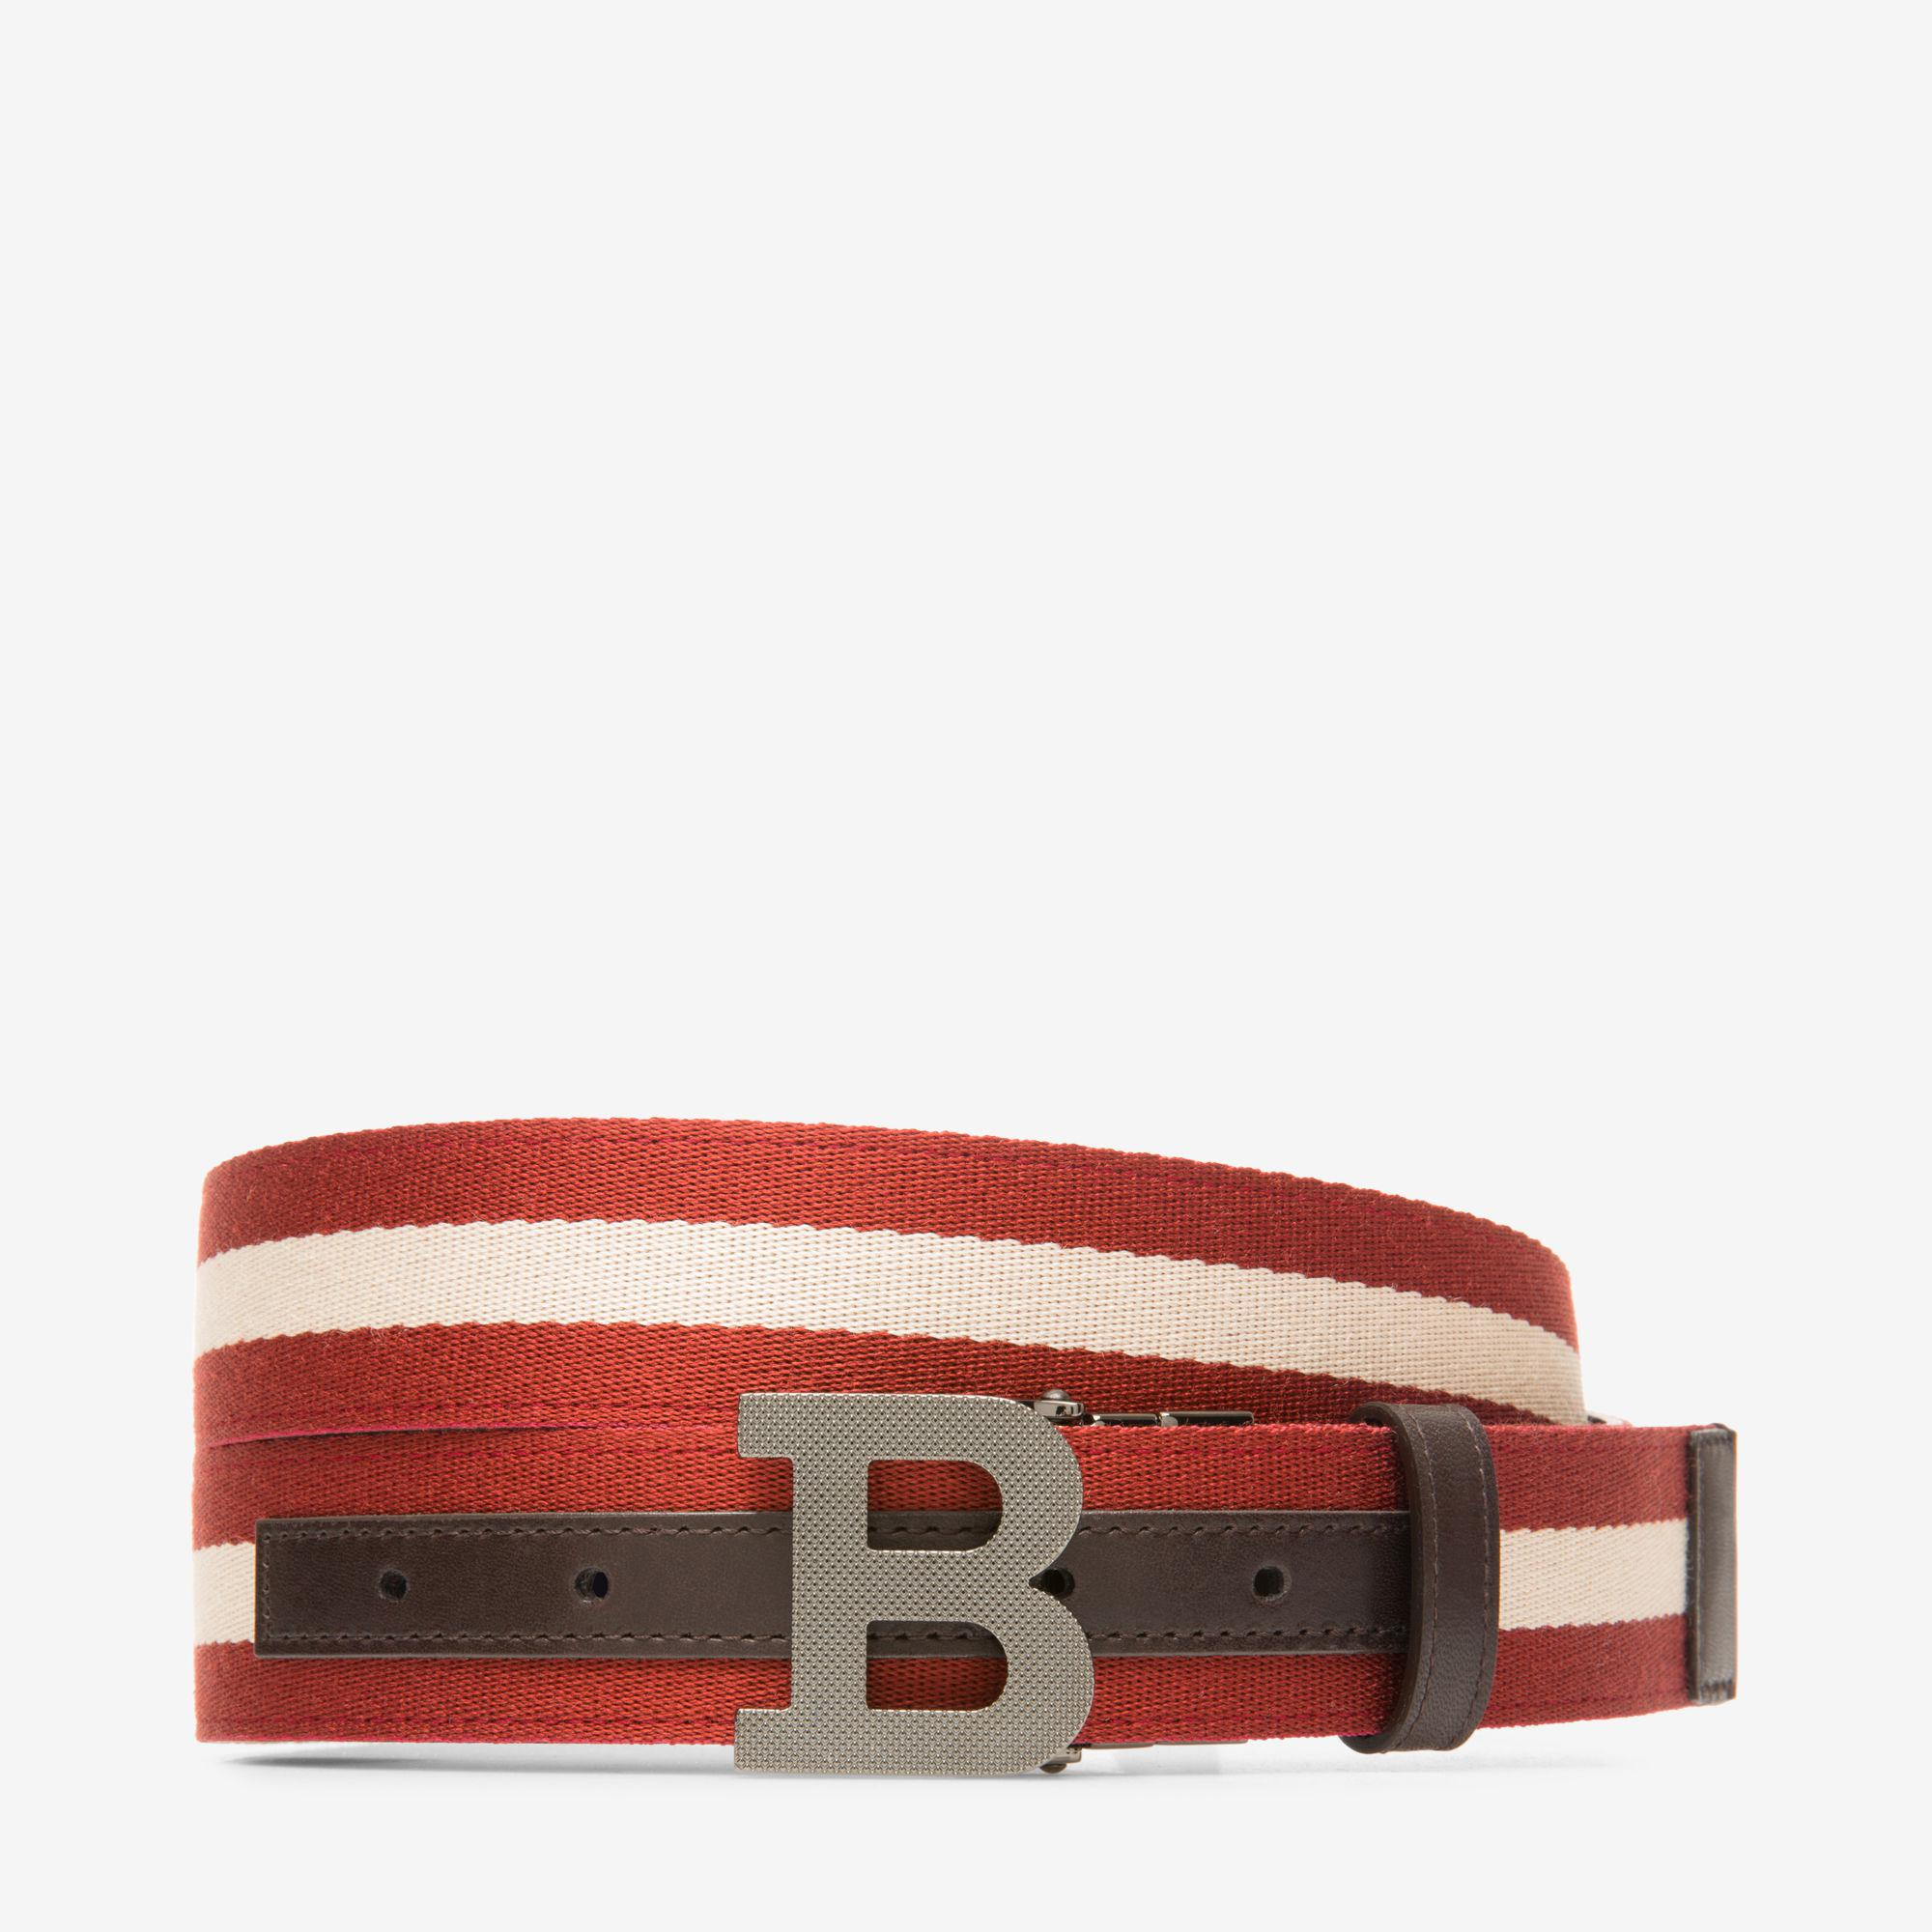 B Oblique 30Mm Red, Womens leather adjustable belt in dark red Bally